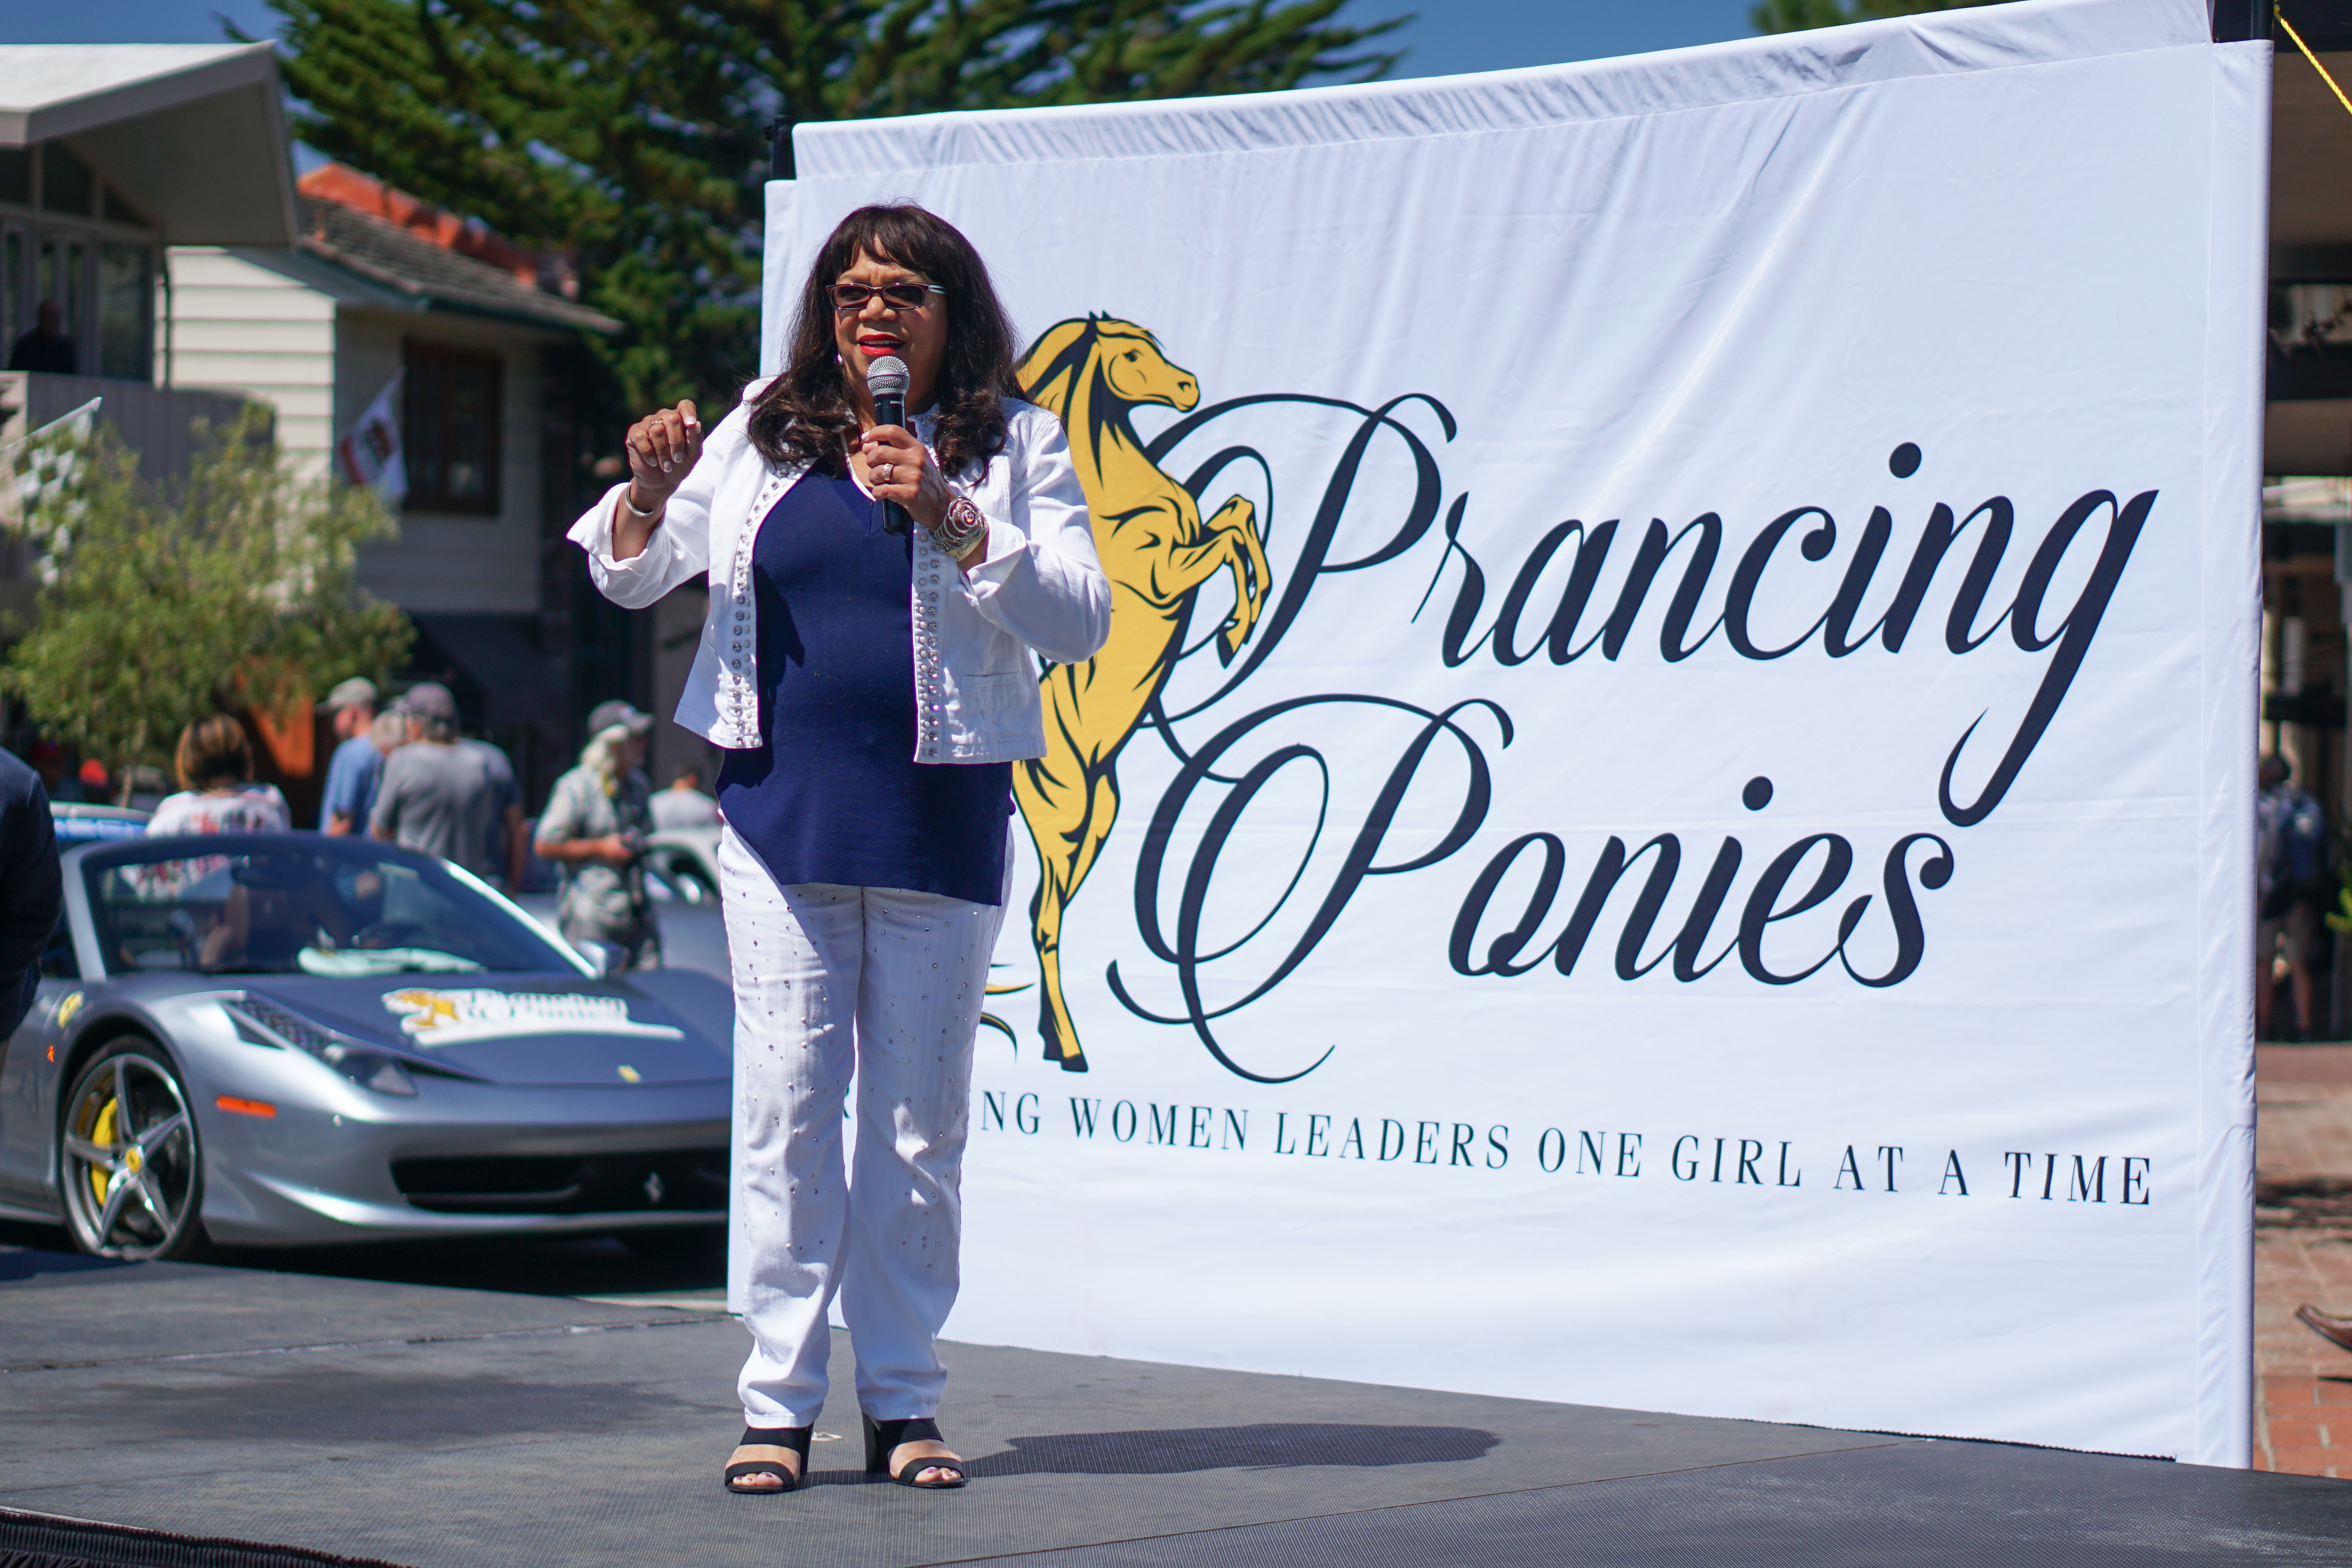 Bettye Saxon of AT&T Communications tells her career story at the Prancing Ponies show